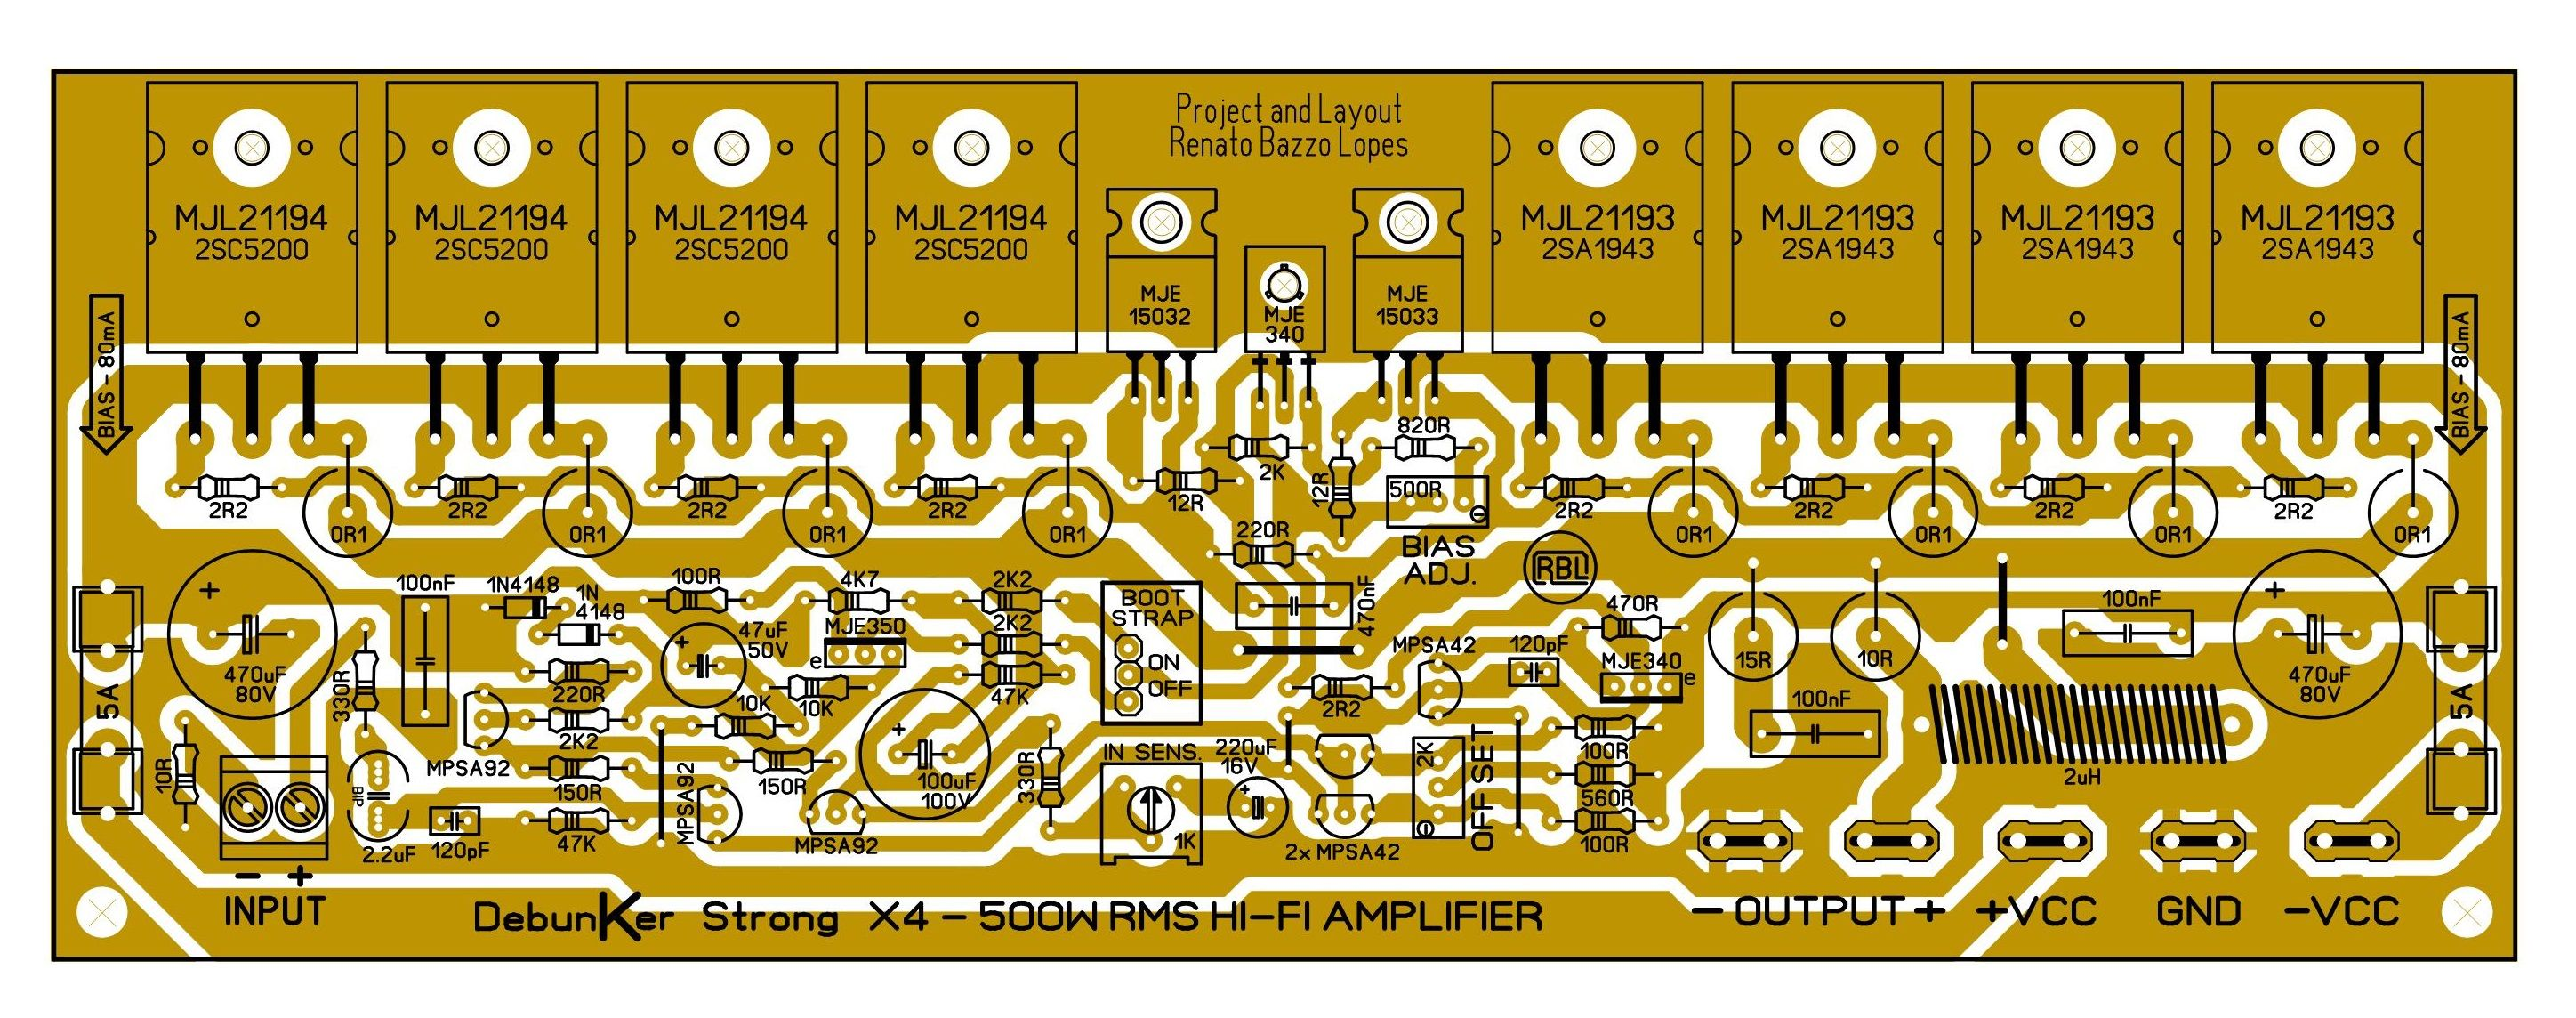 Click The Image To Open In Full Size Electroncs Pinterest Acts As An Output Of Circuit View Fullsize Picture Amp Electronics Strong